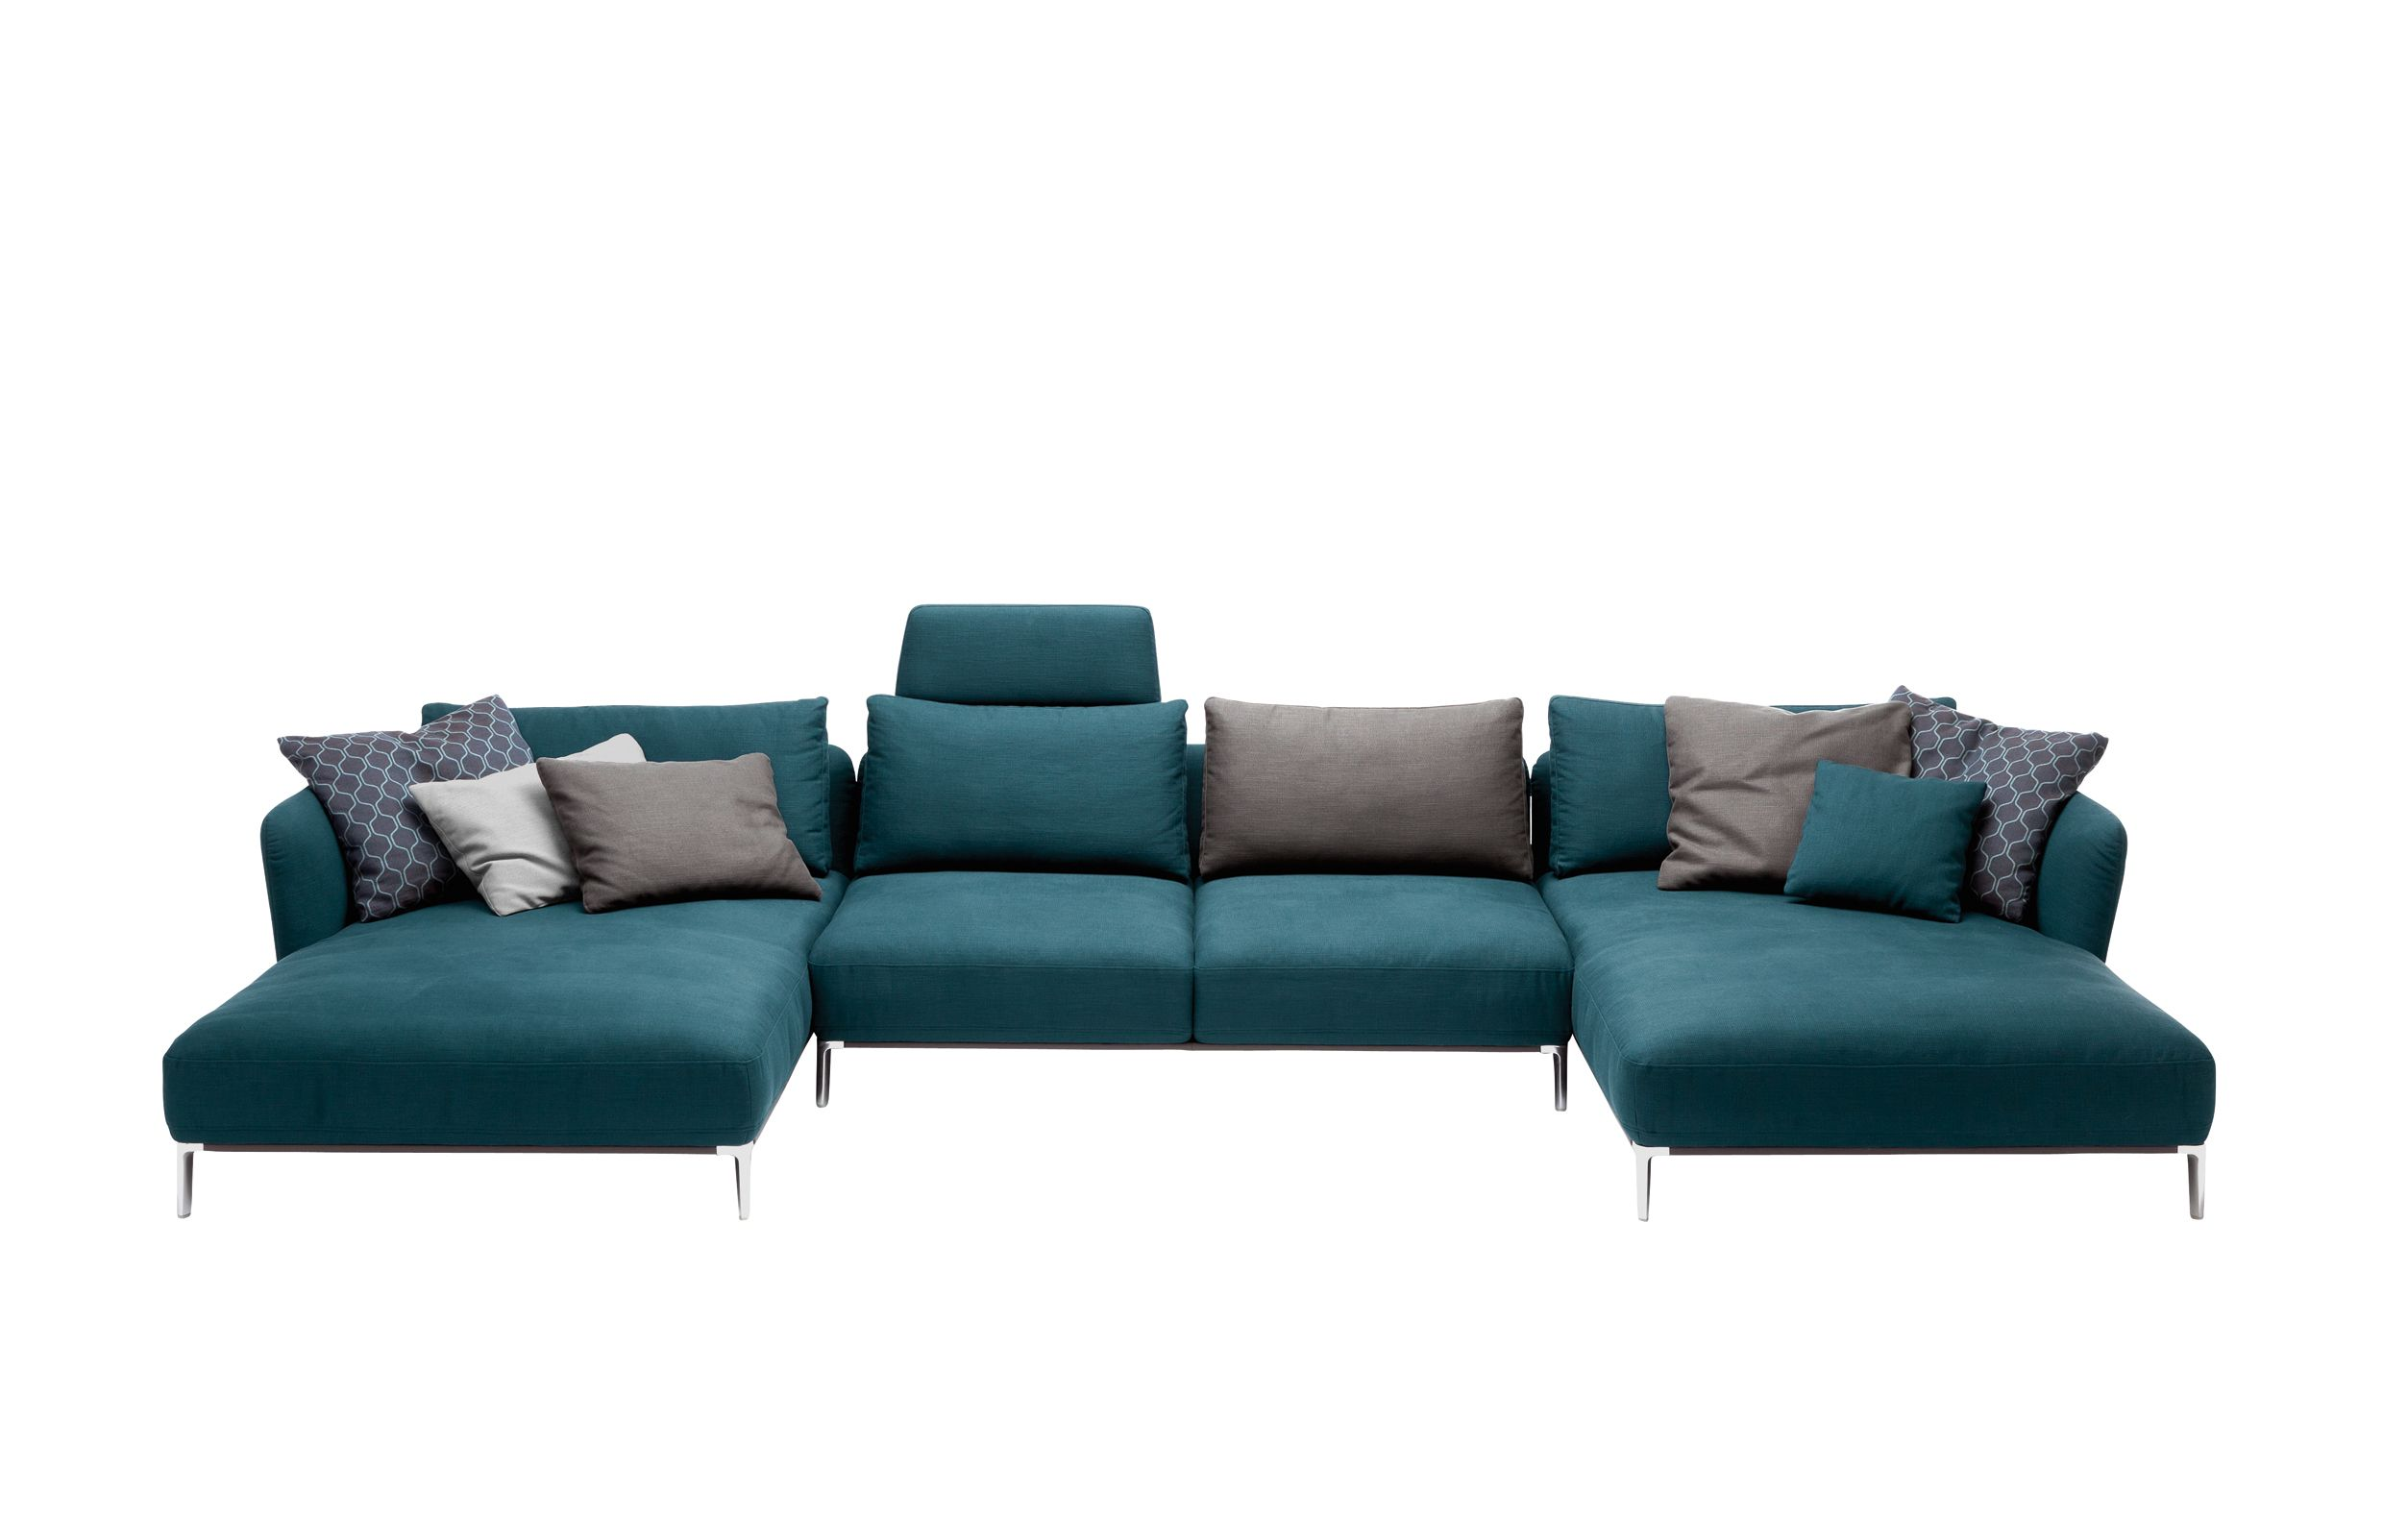 Rolf Benz Scala Sofa Interiors Pinterest